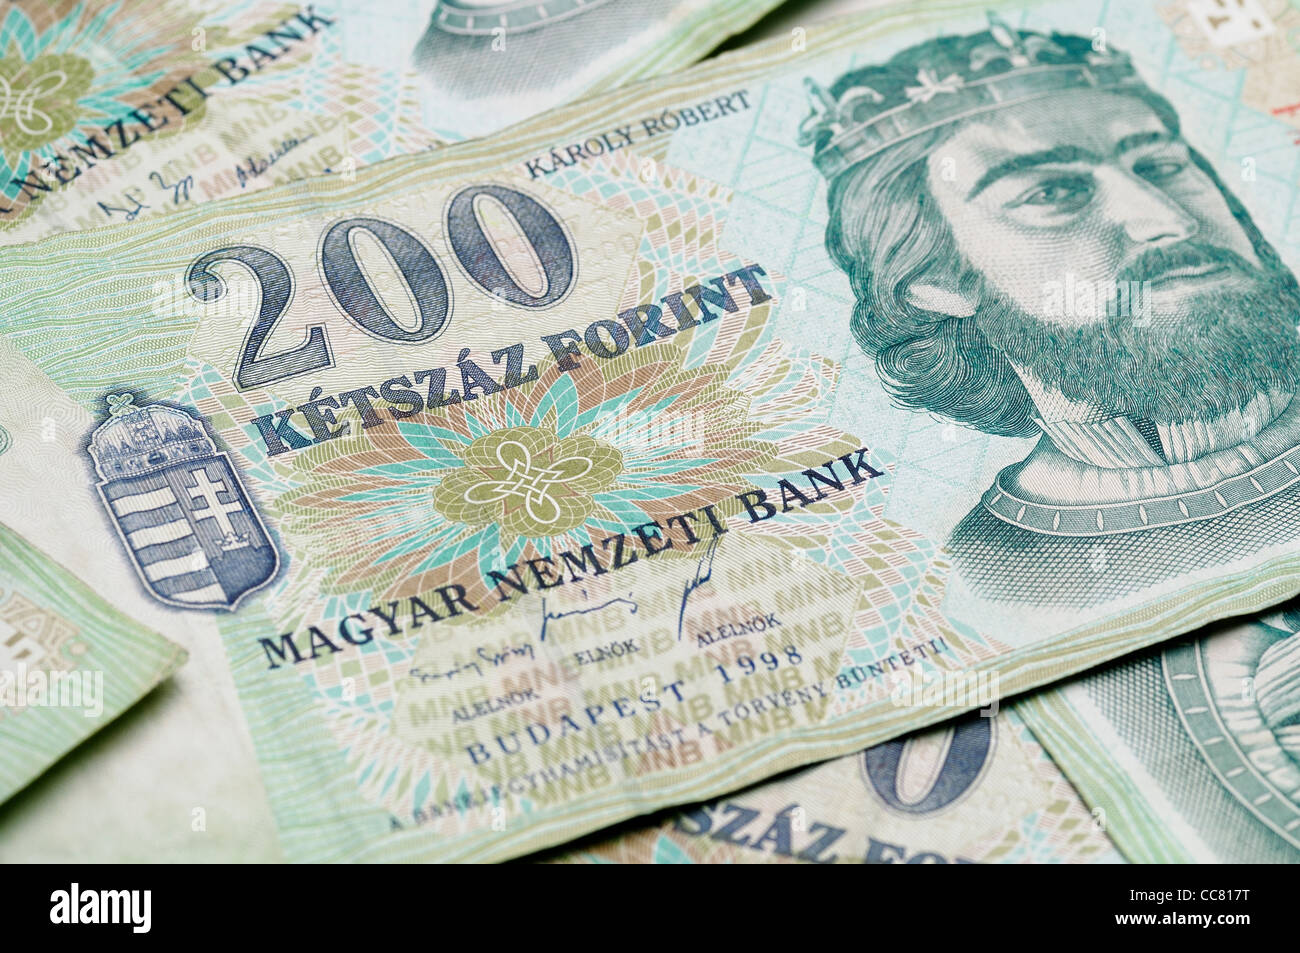 Forint Note, Currency of Hungary. The Forint has seen heavy falls against the Euro, as the country struggles with - Stock Image